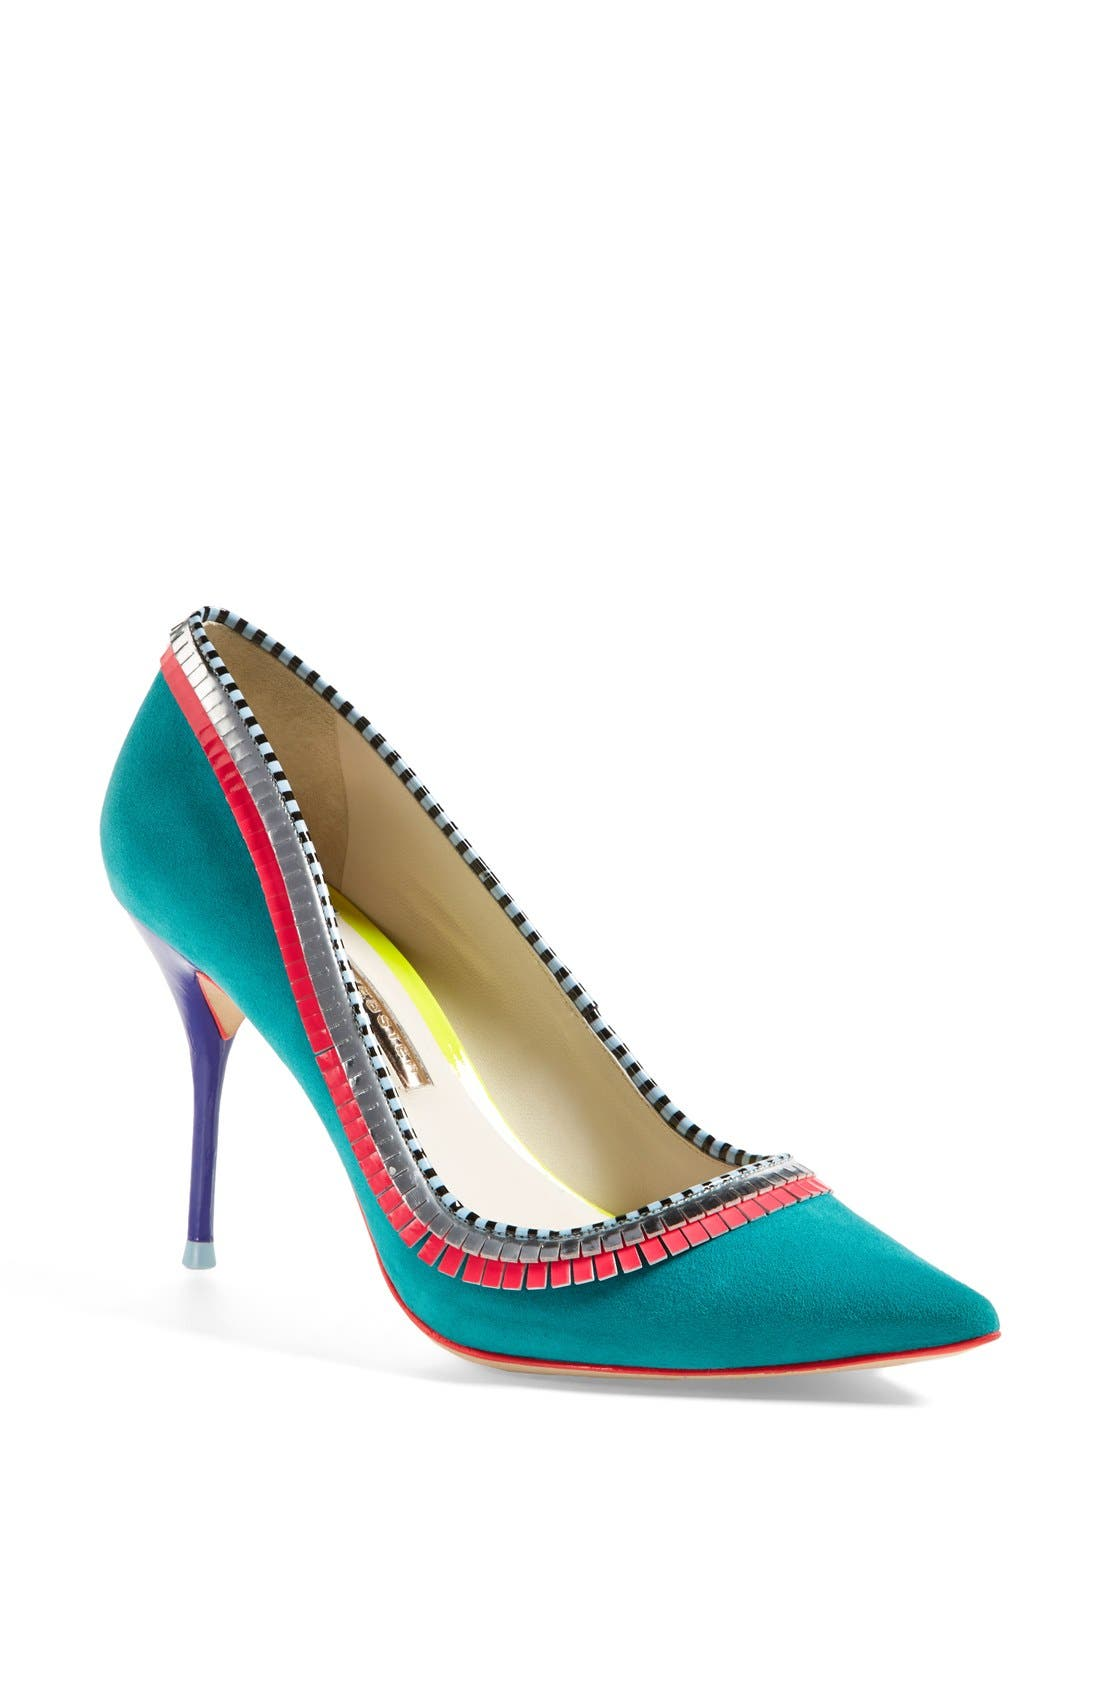 Alternate Image 1 Selected - Sophia Webster 'Lola' Pump